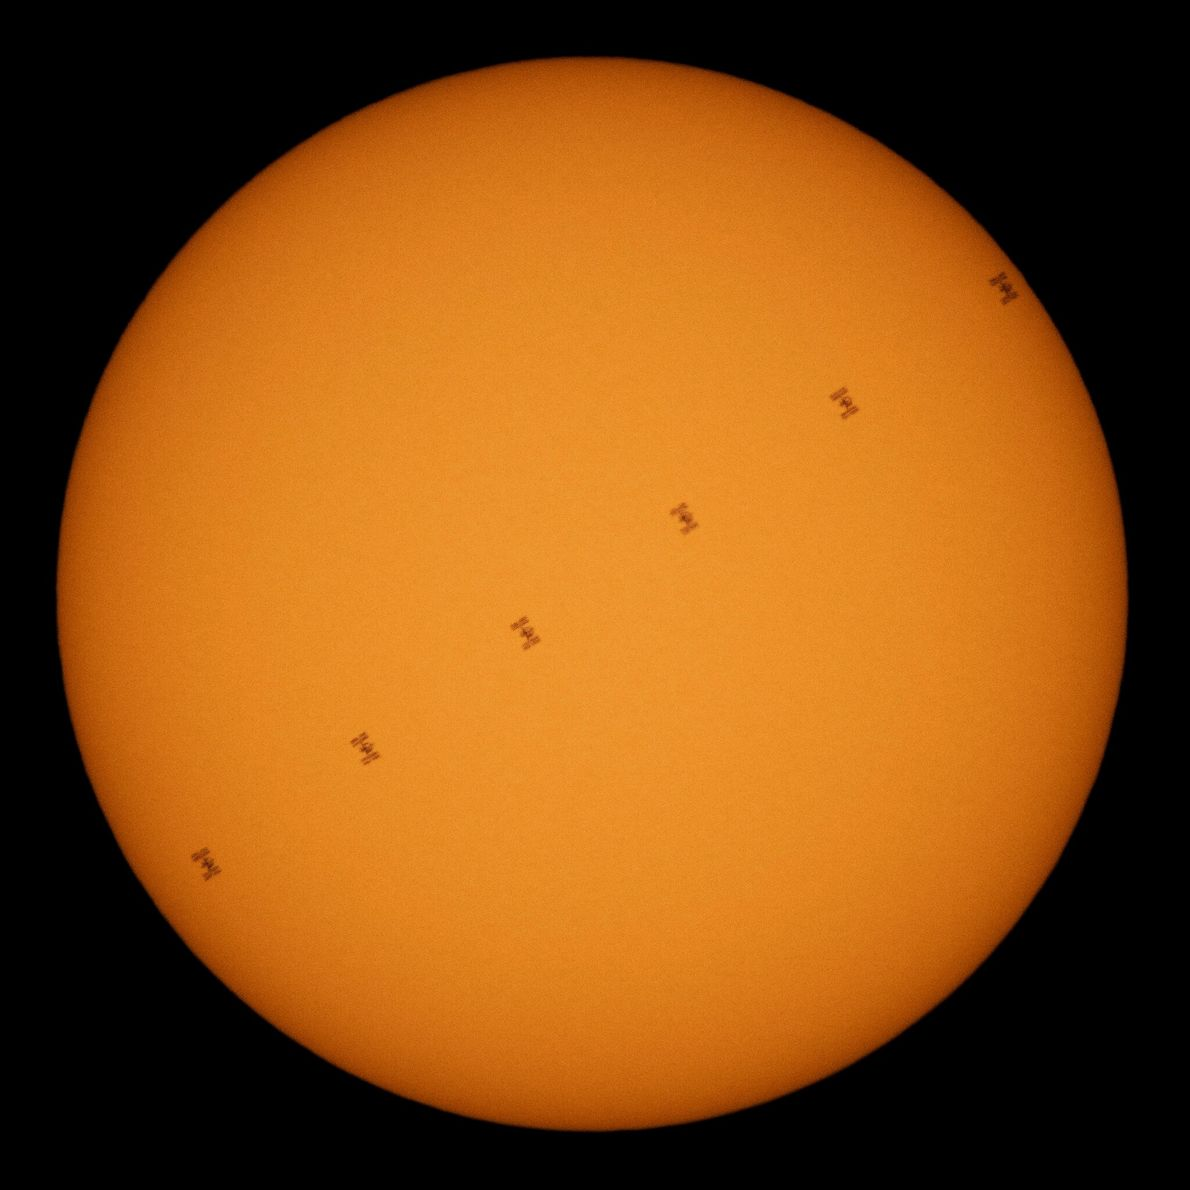 A march of black dots against a glowing disk, the International Space Station transits the sun ...